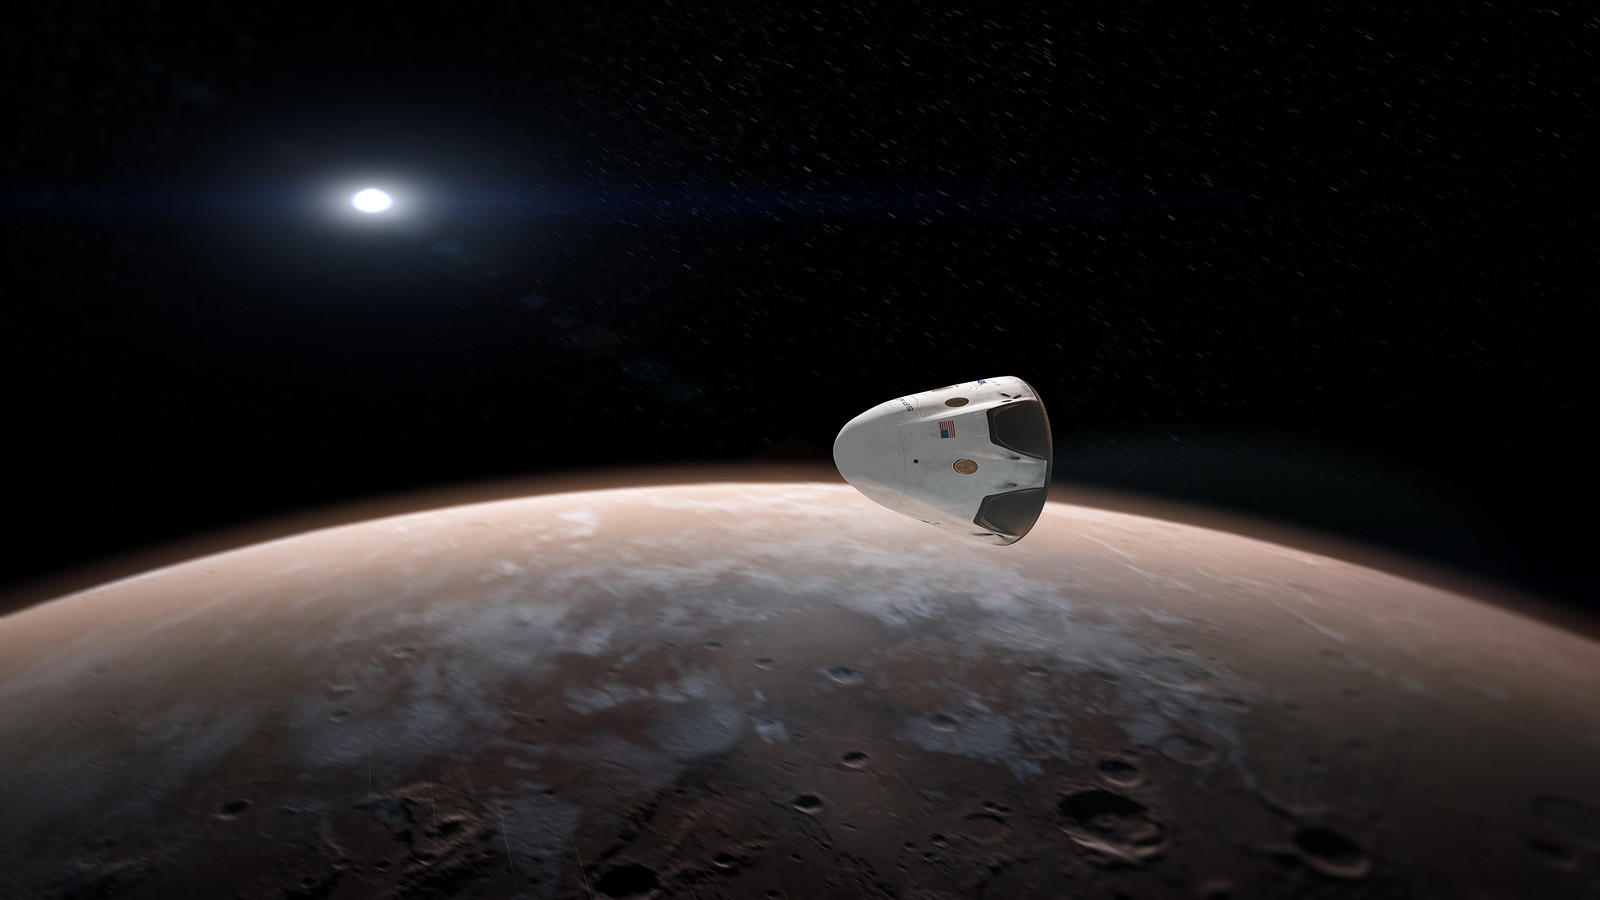 Elon Musk To Reveal Major Changes To Plans For Colonizing Mars